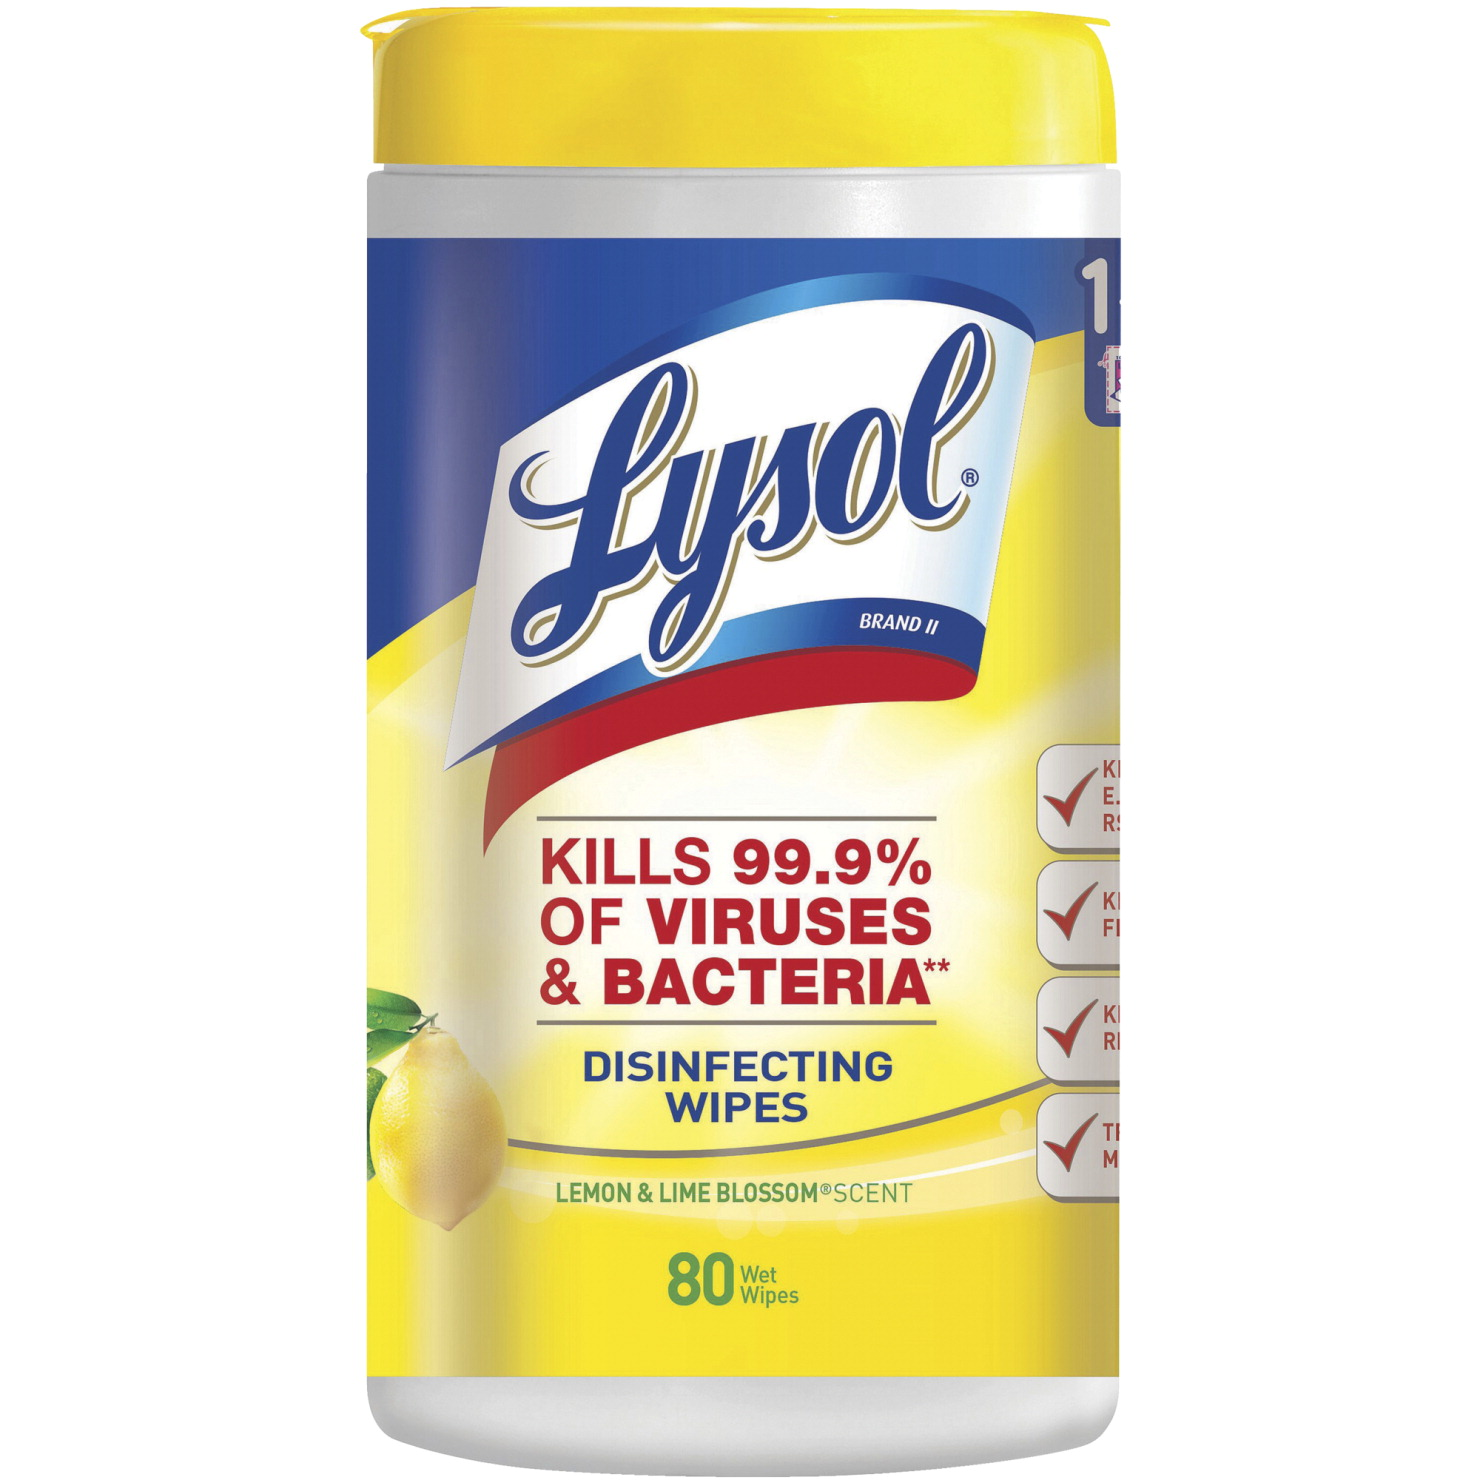 Lysol Disinfecting Wipes, 80 Wipes Per Tub, Lemon and Lime Blossom Scent